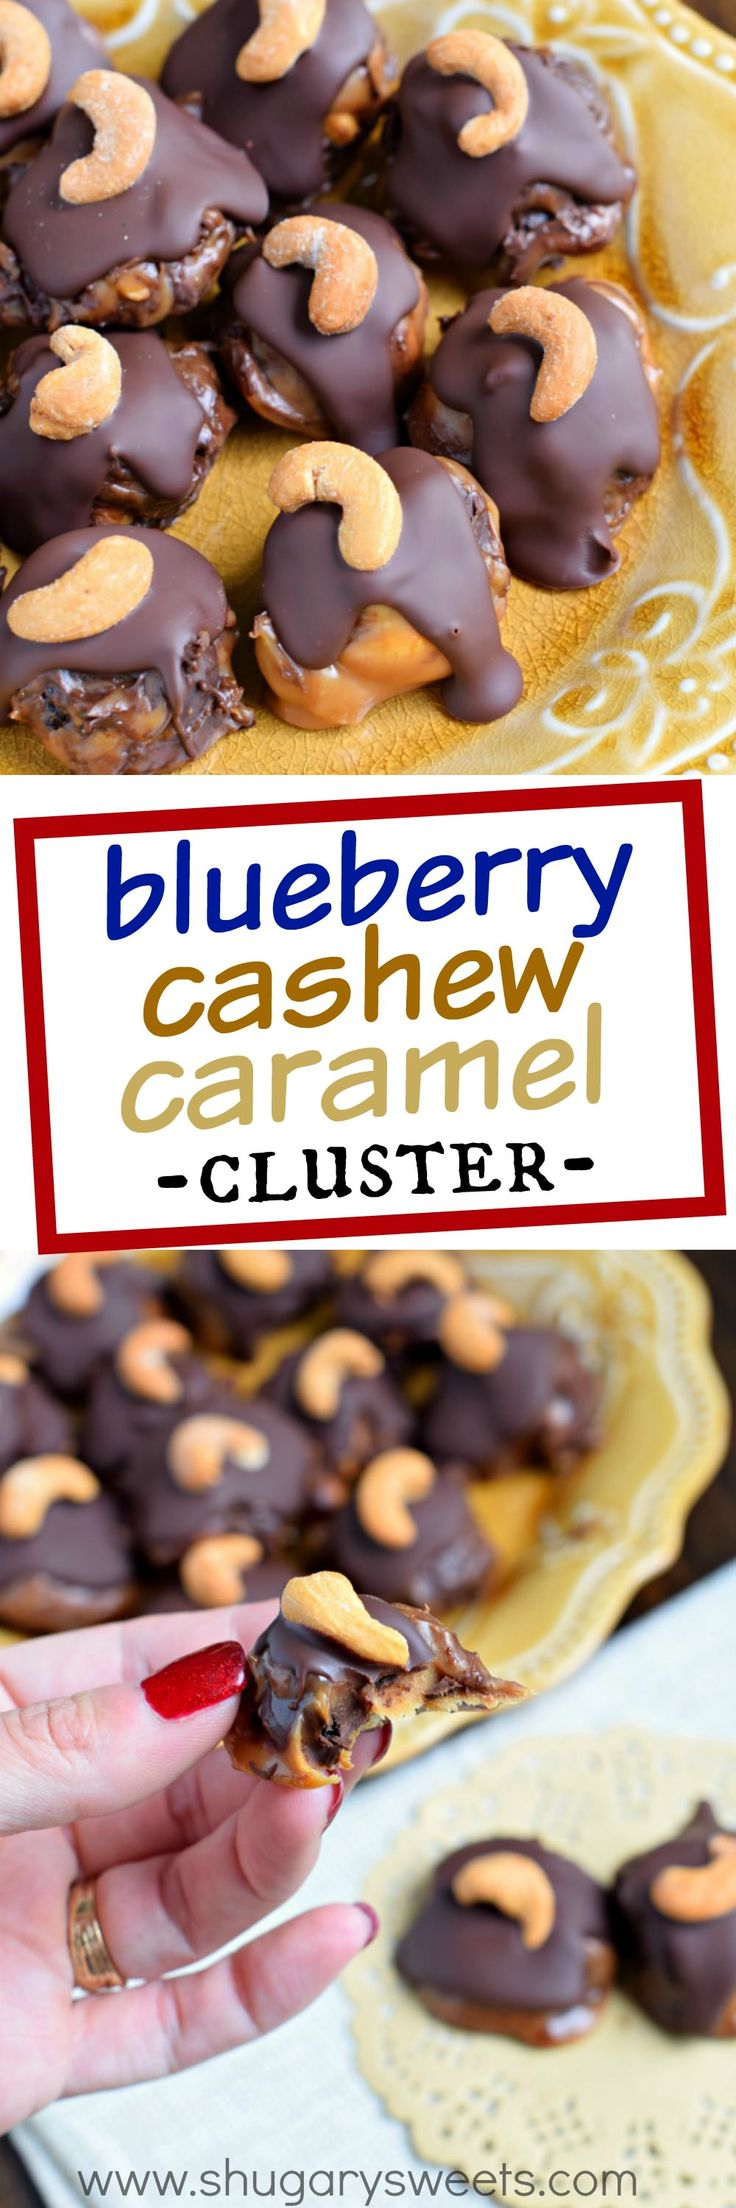 Sweet and salty, these no bake Blueberry Cashew Caramel Clusters with DOVE Chocolate are going to be your new, go-to summer treat! The buttery smooth caramel with the chocolate covered Blueberries are amazing. The crunch of cashews gives this treat the perfect texture! @DoveChocBrand #sponsored